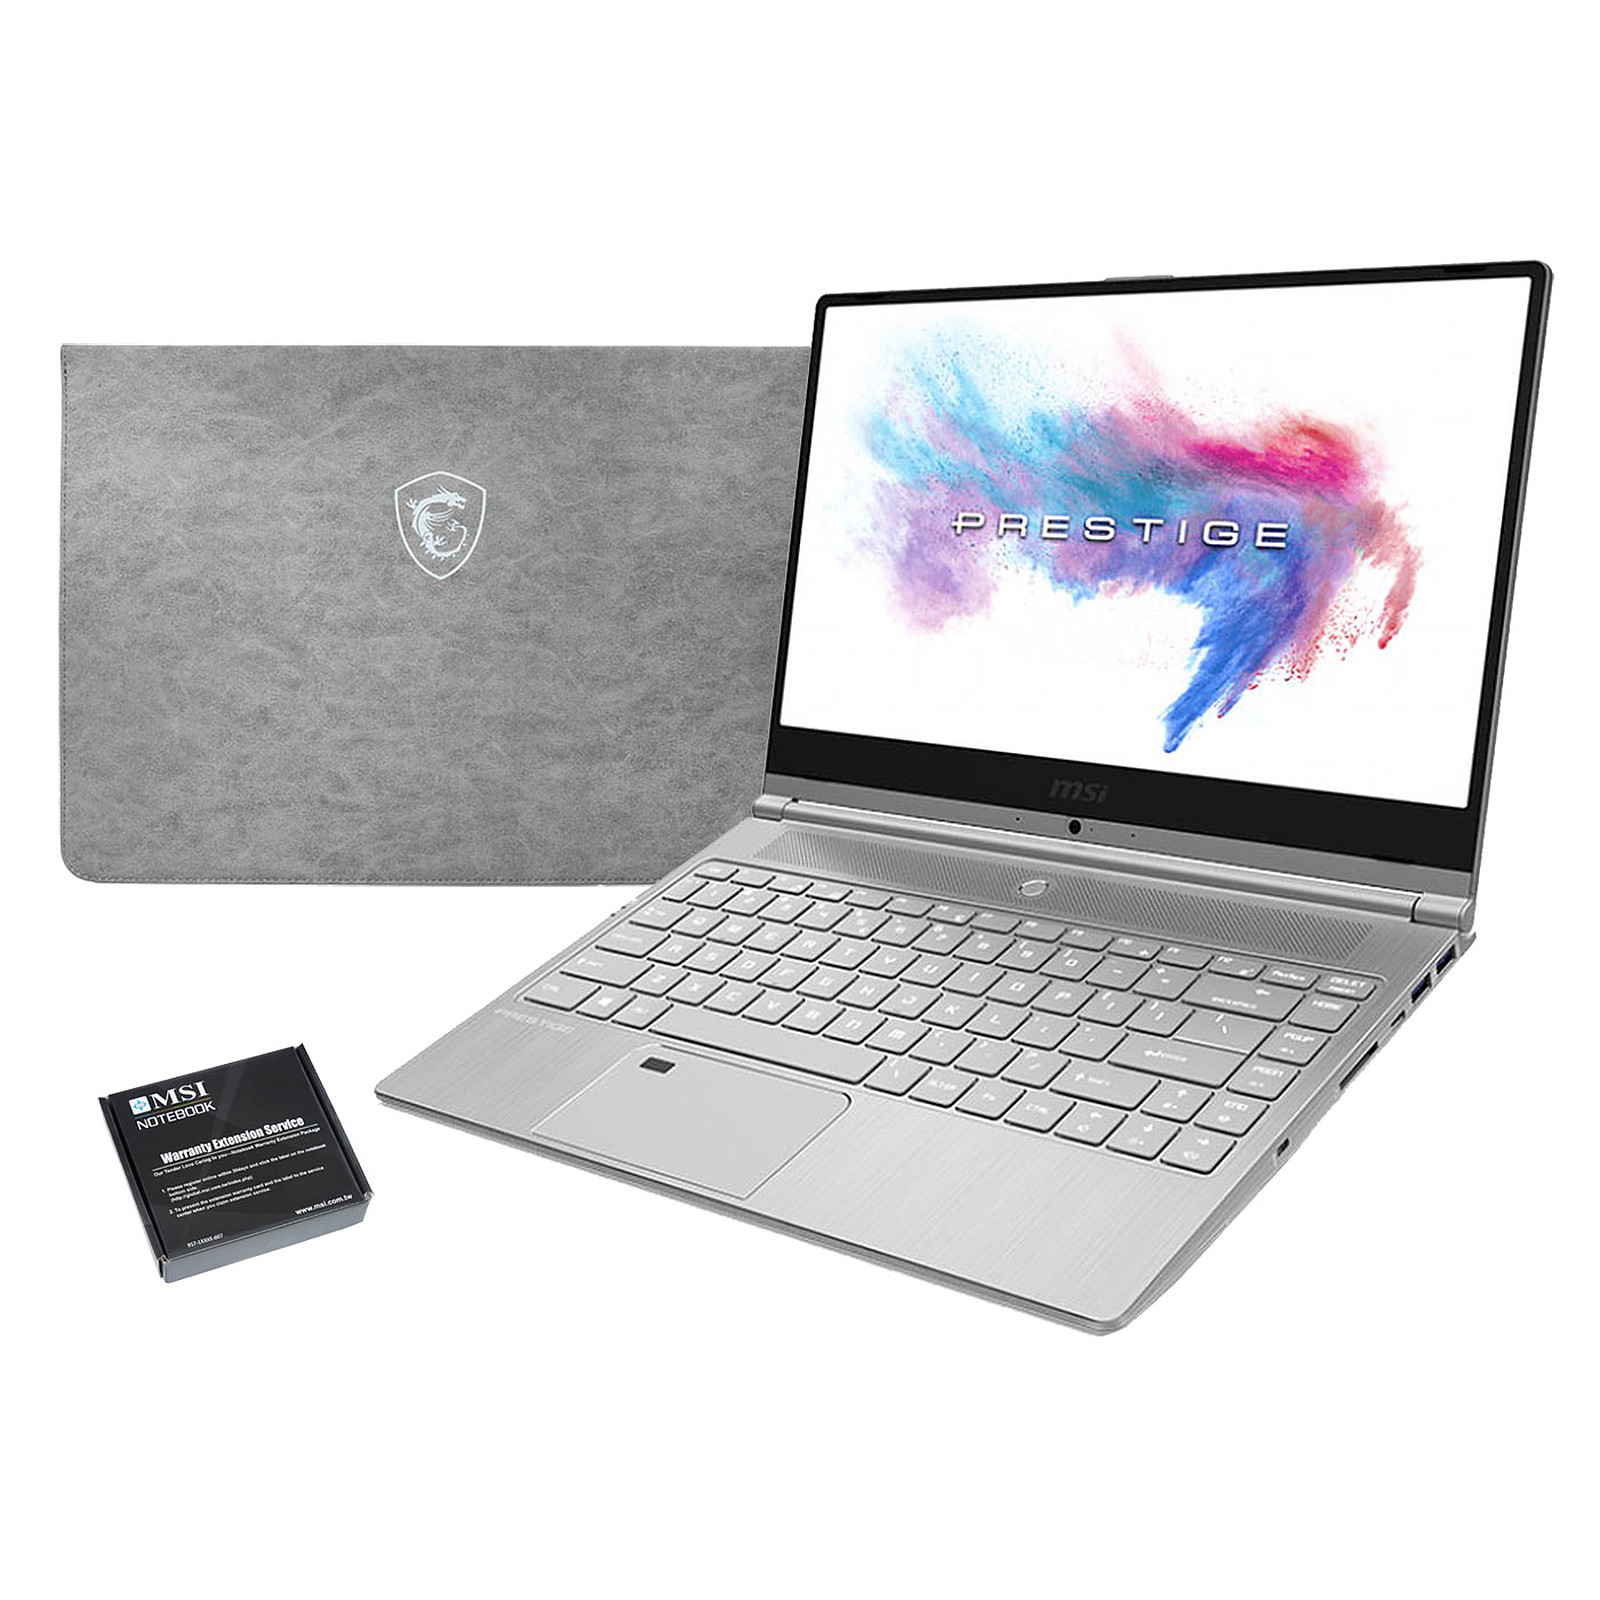 MSI PS42 8RB-035FR + MSI Sleeve Bag OFFERT !